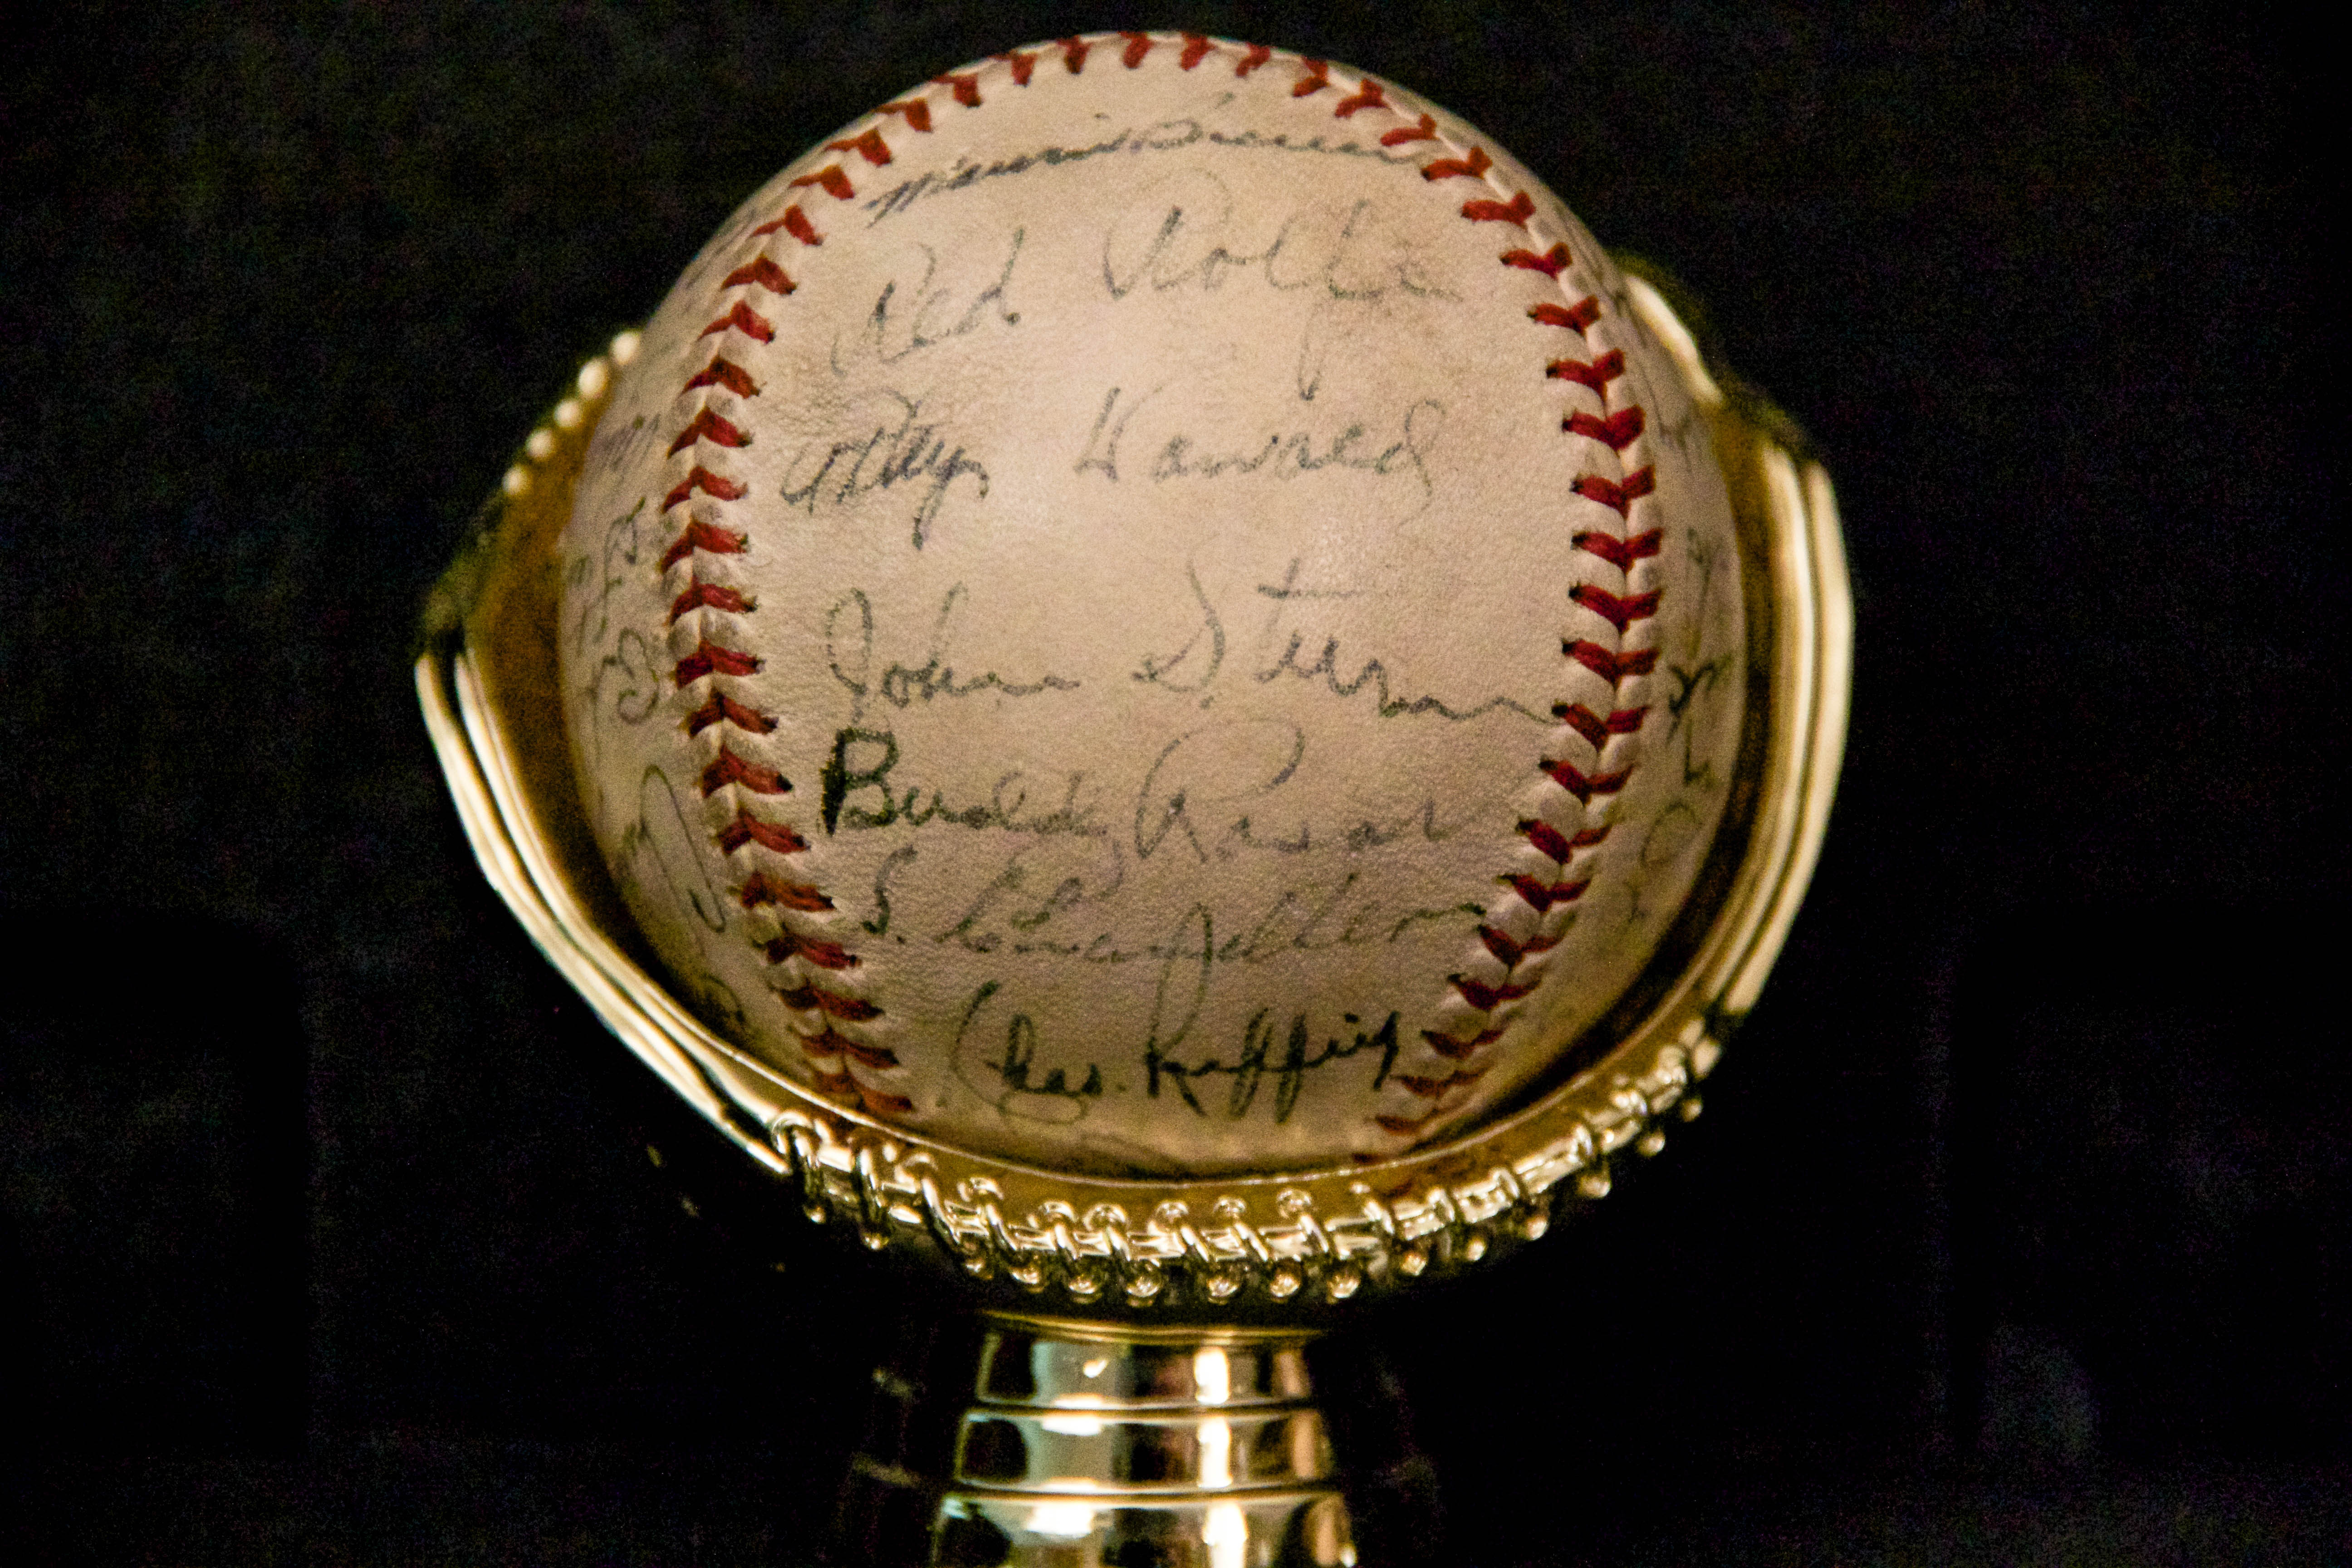 1941 World Series Champions